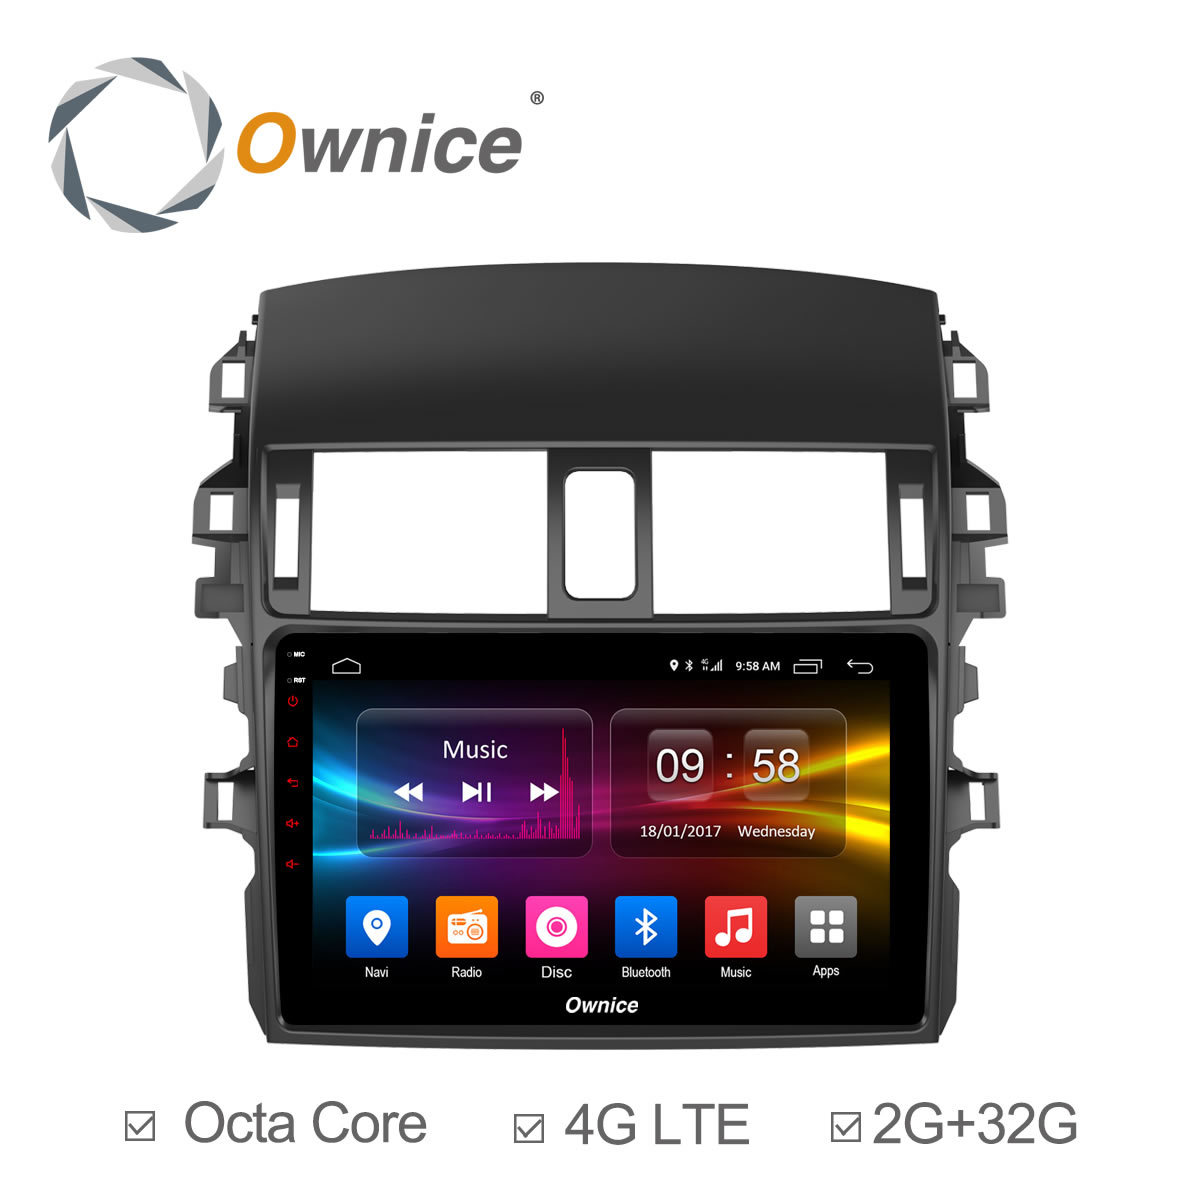 Ownice C500+ Android 6.0 car DVD player Octa Core for Toyota corolla 2009 2010 2011 2012 2013 2GB RAM 32GB ROM Support 4G LTE